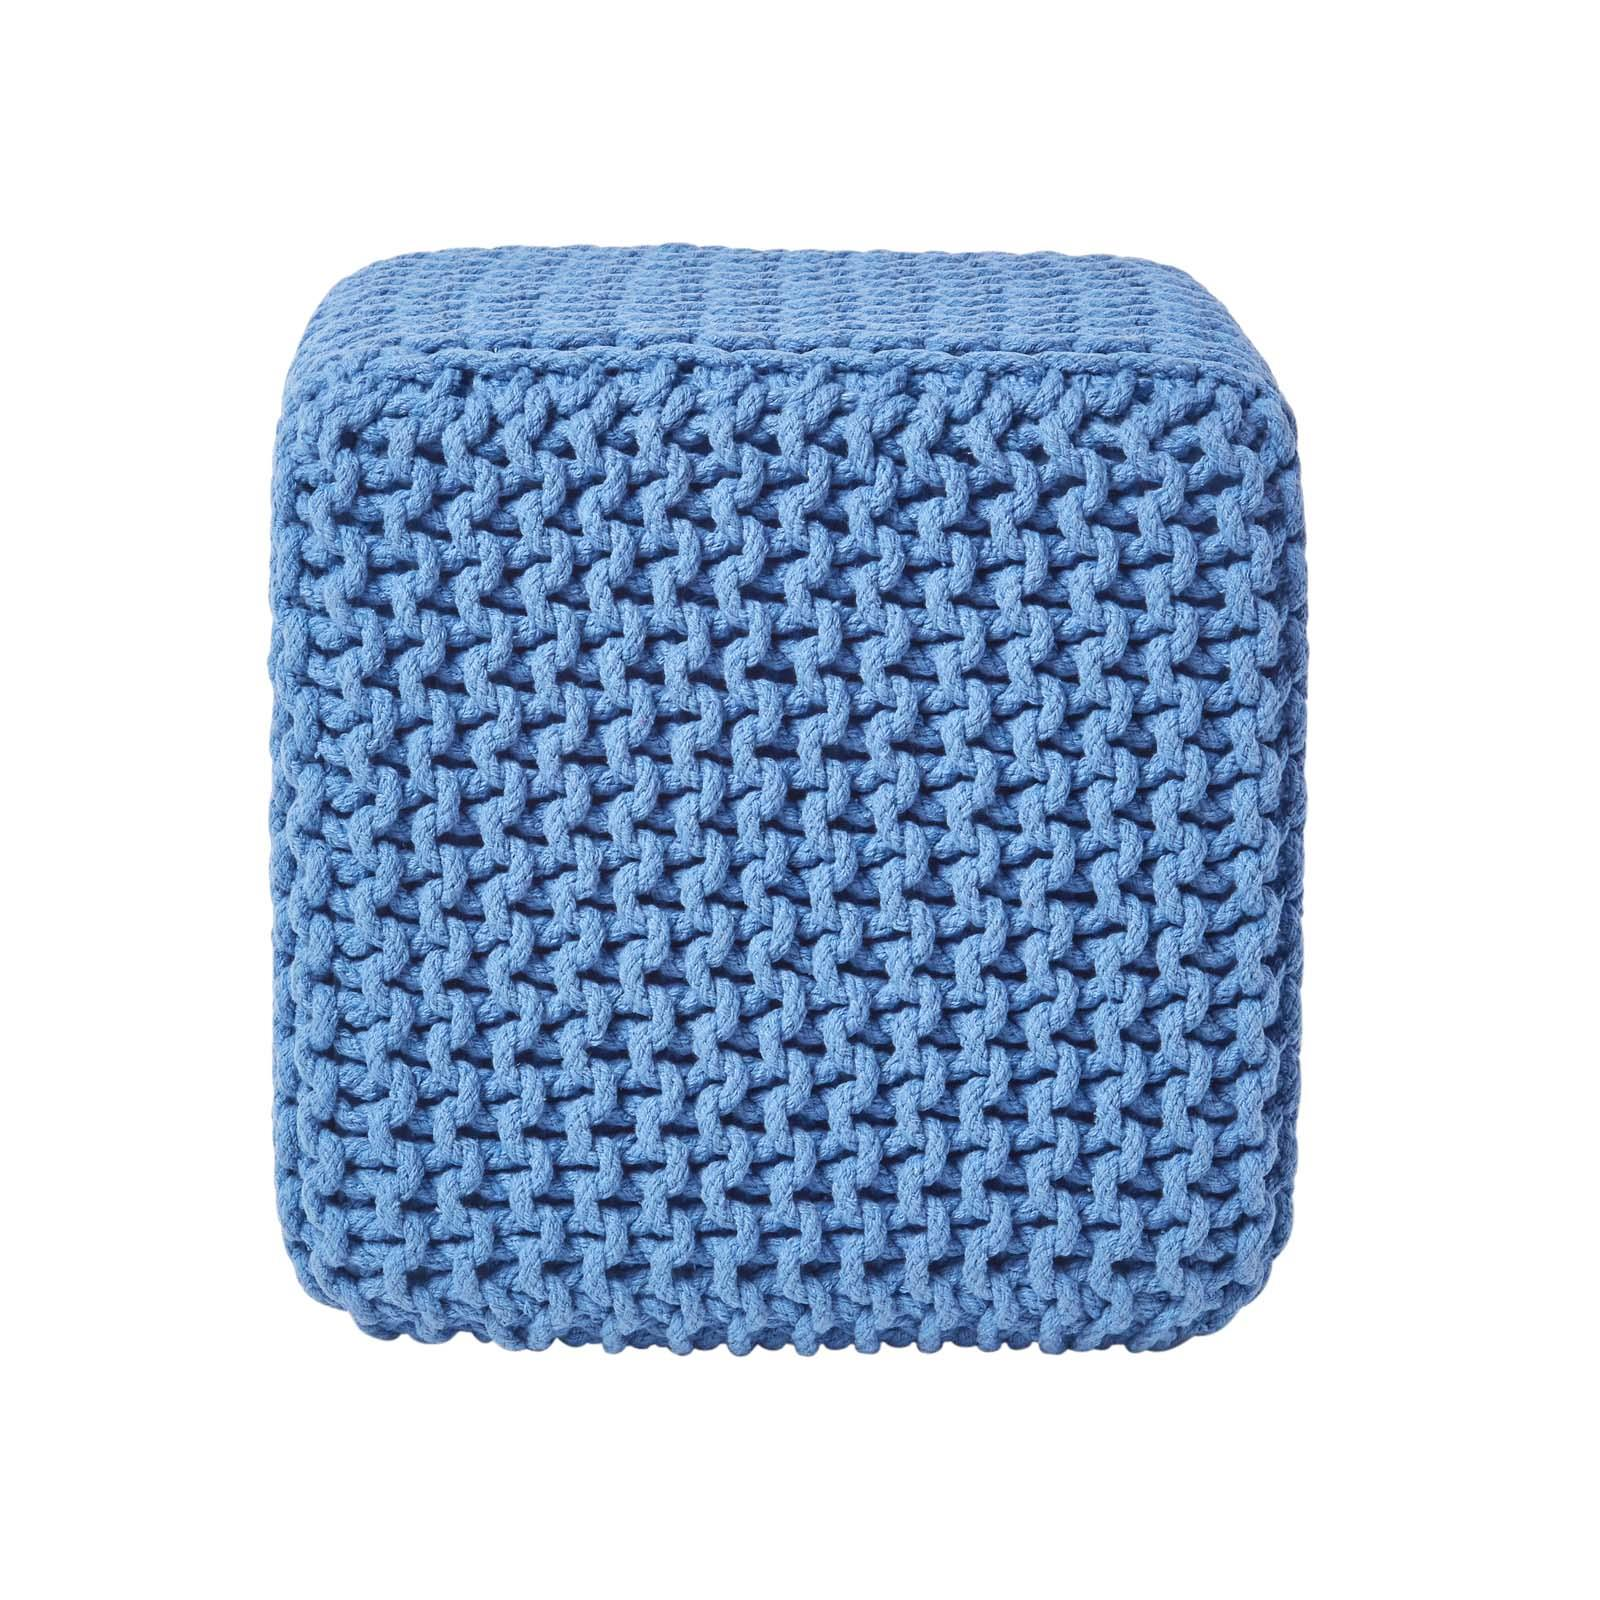 Hand-Knitted-100-Cotton-Pouffes-Round-Sphere-Or-Cube-Square-Chunky-Footstools thumbnail 16